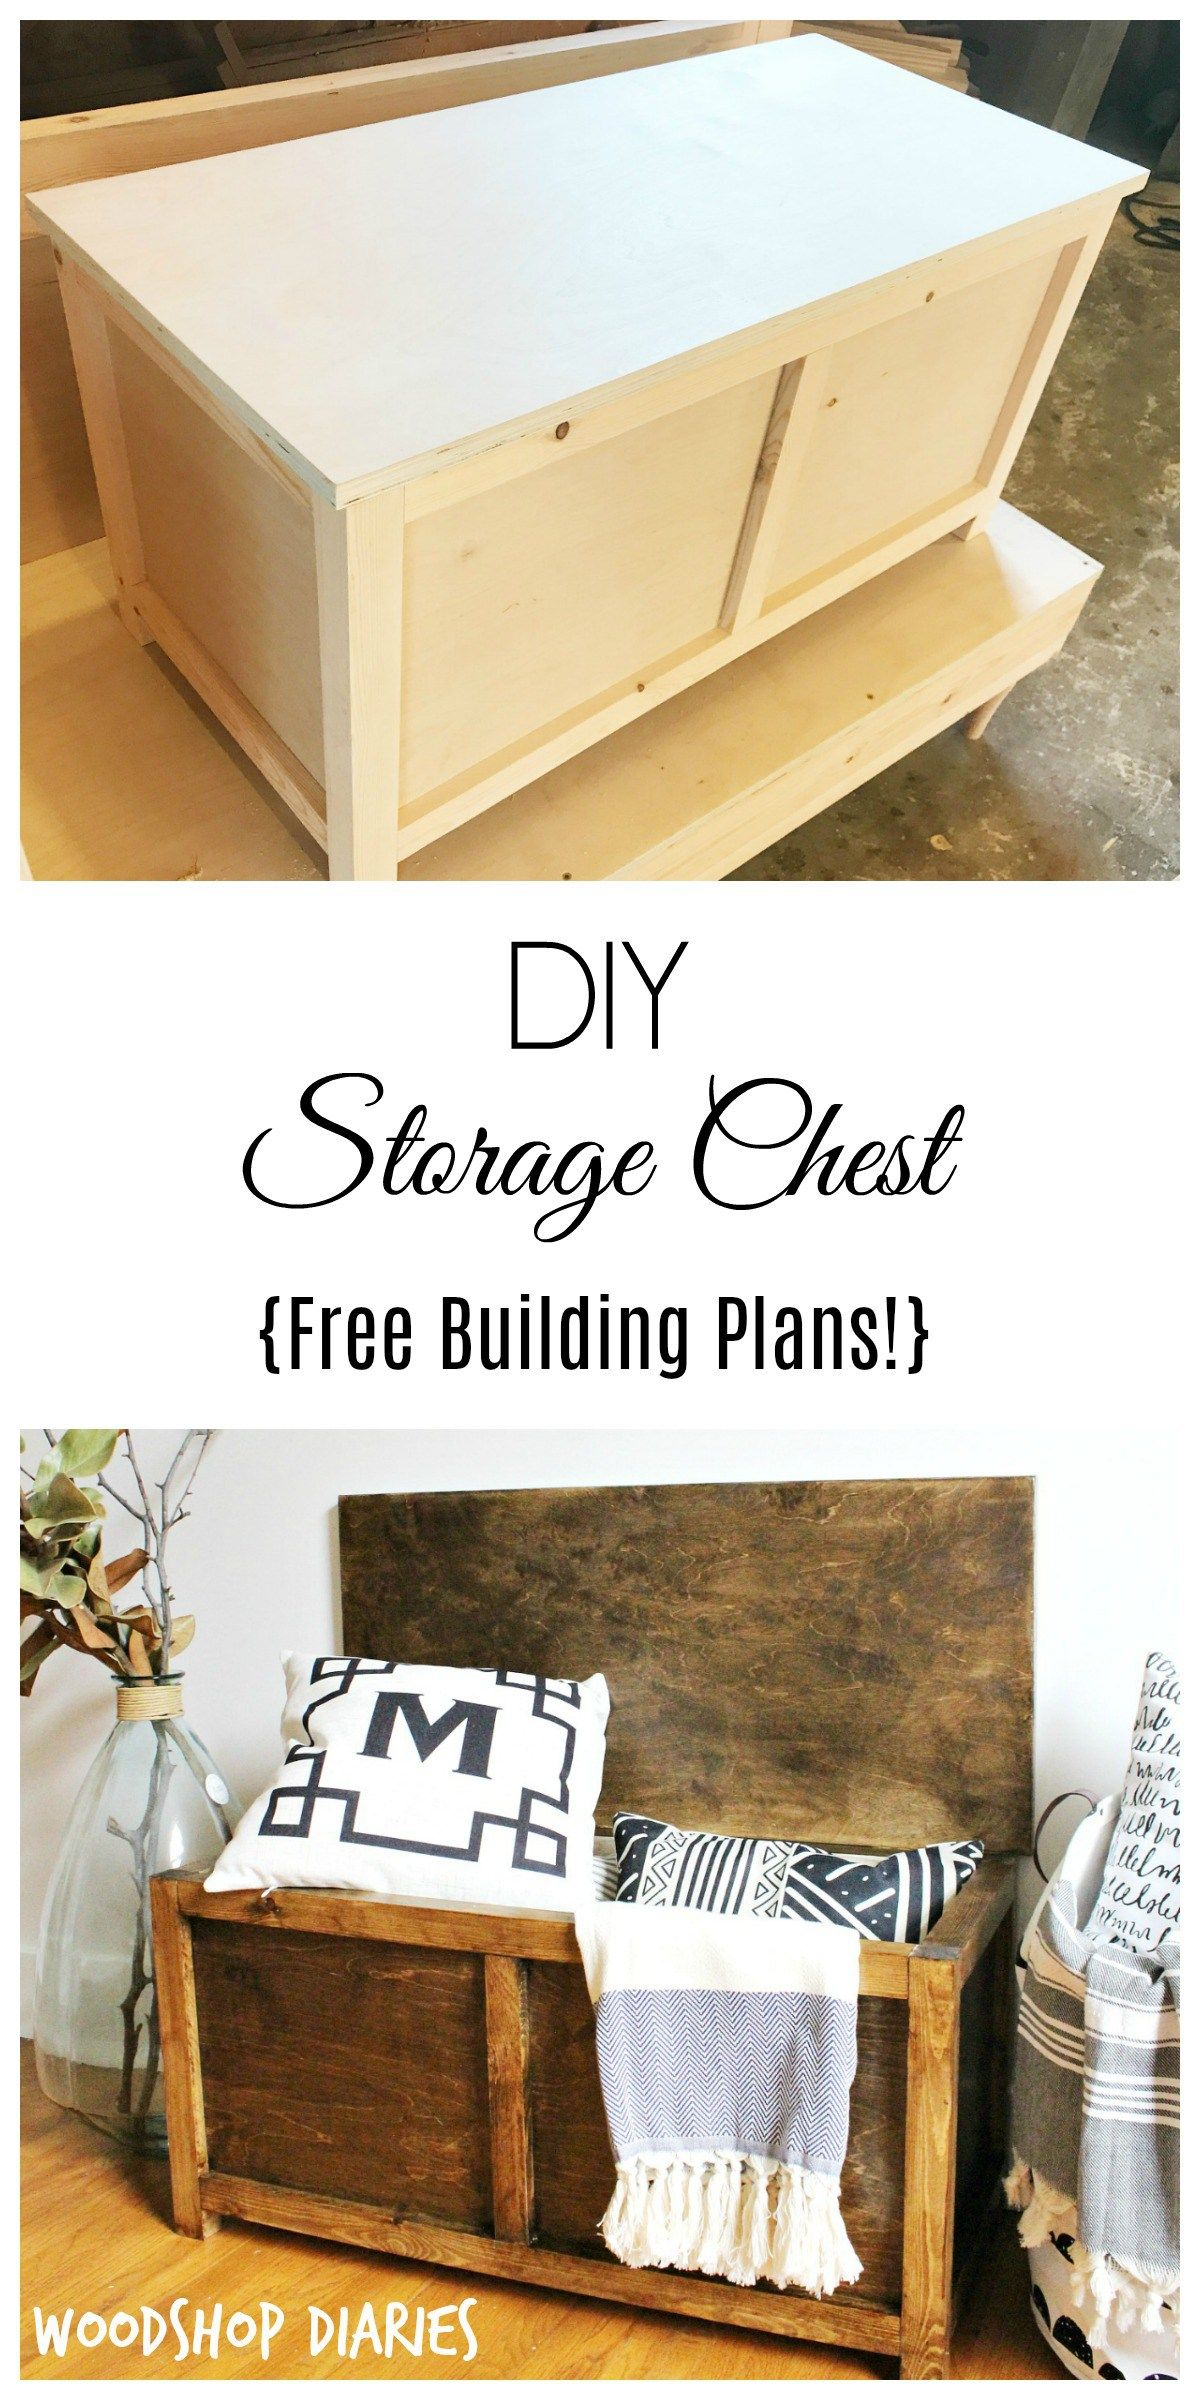 How to build a simple diy storage chest indoor build projects